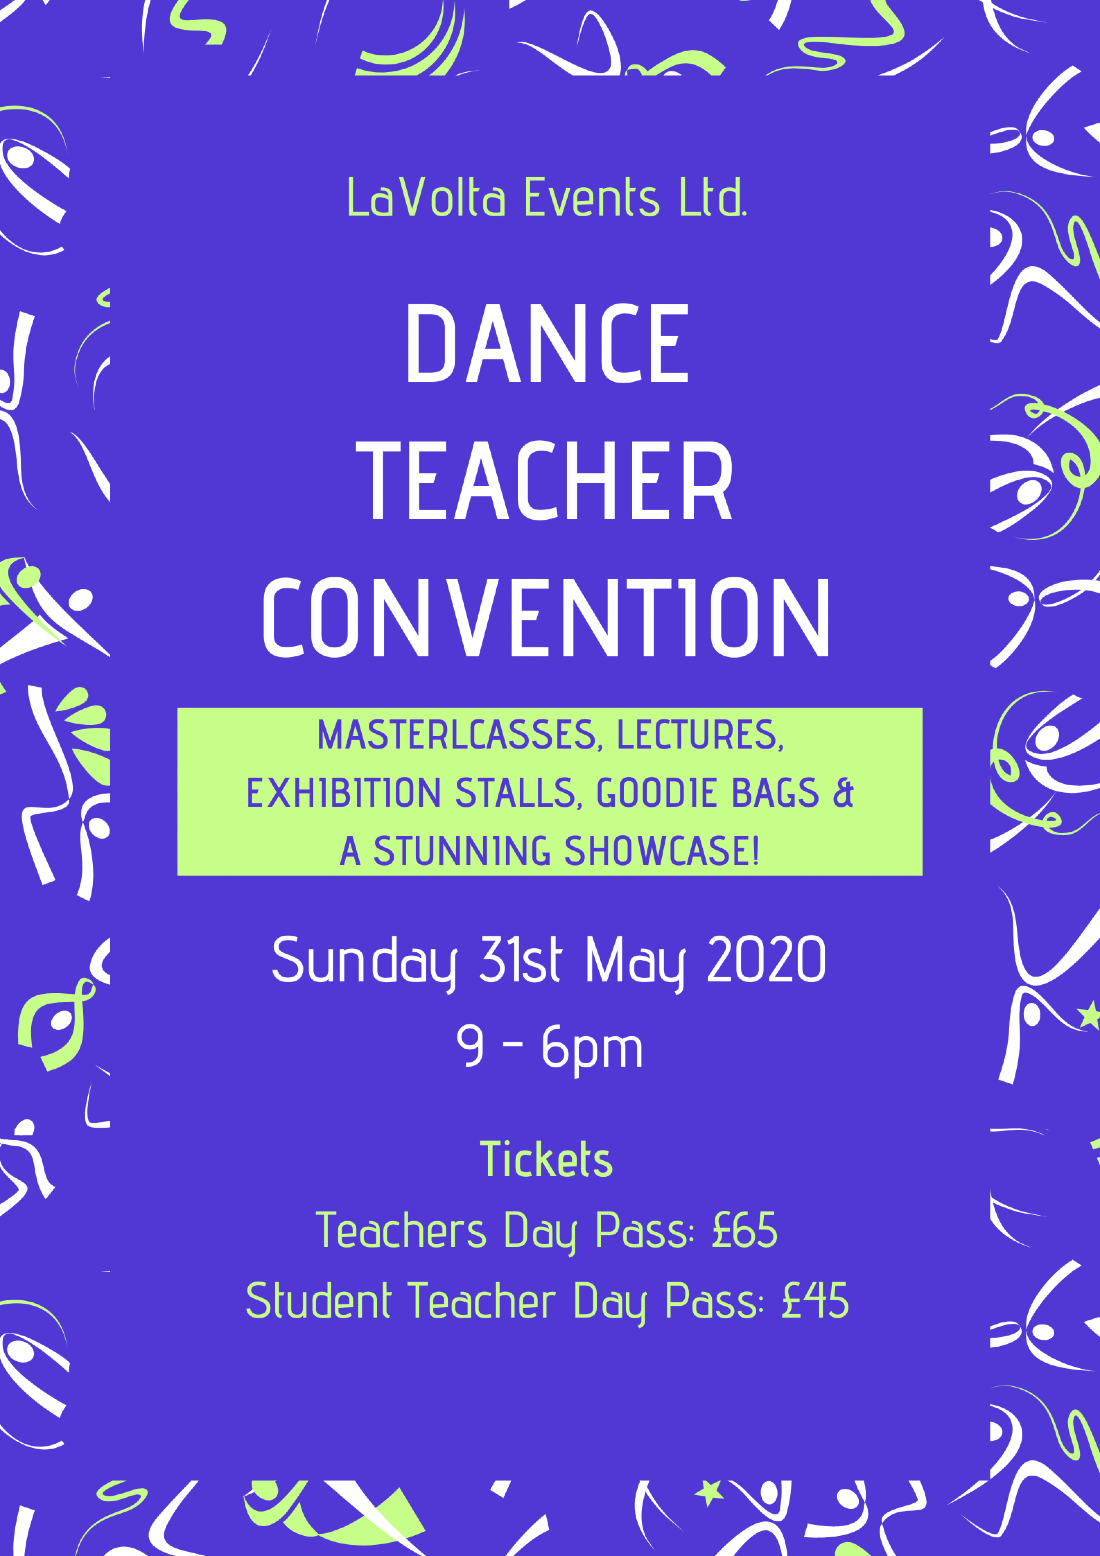 Dance Teacher Convention